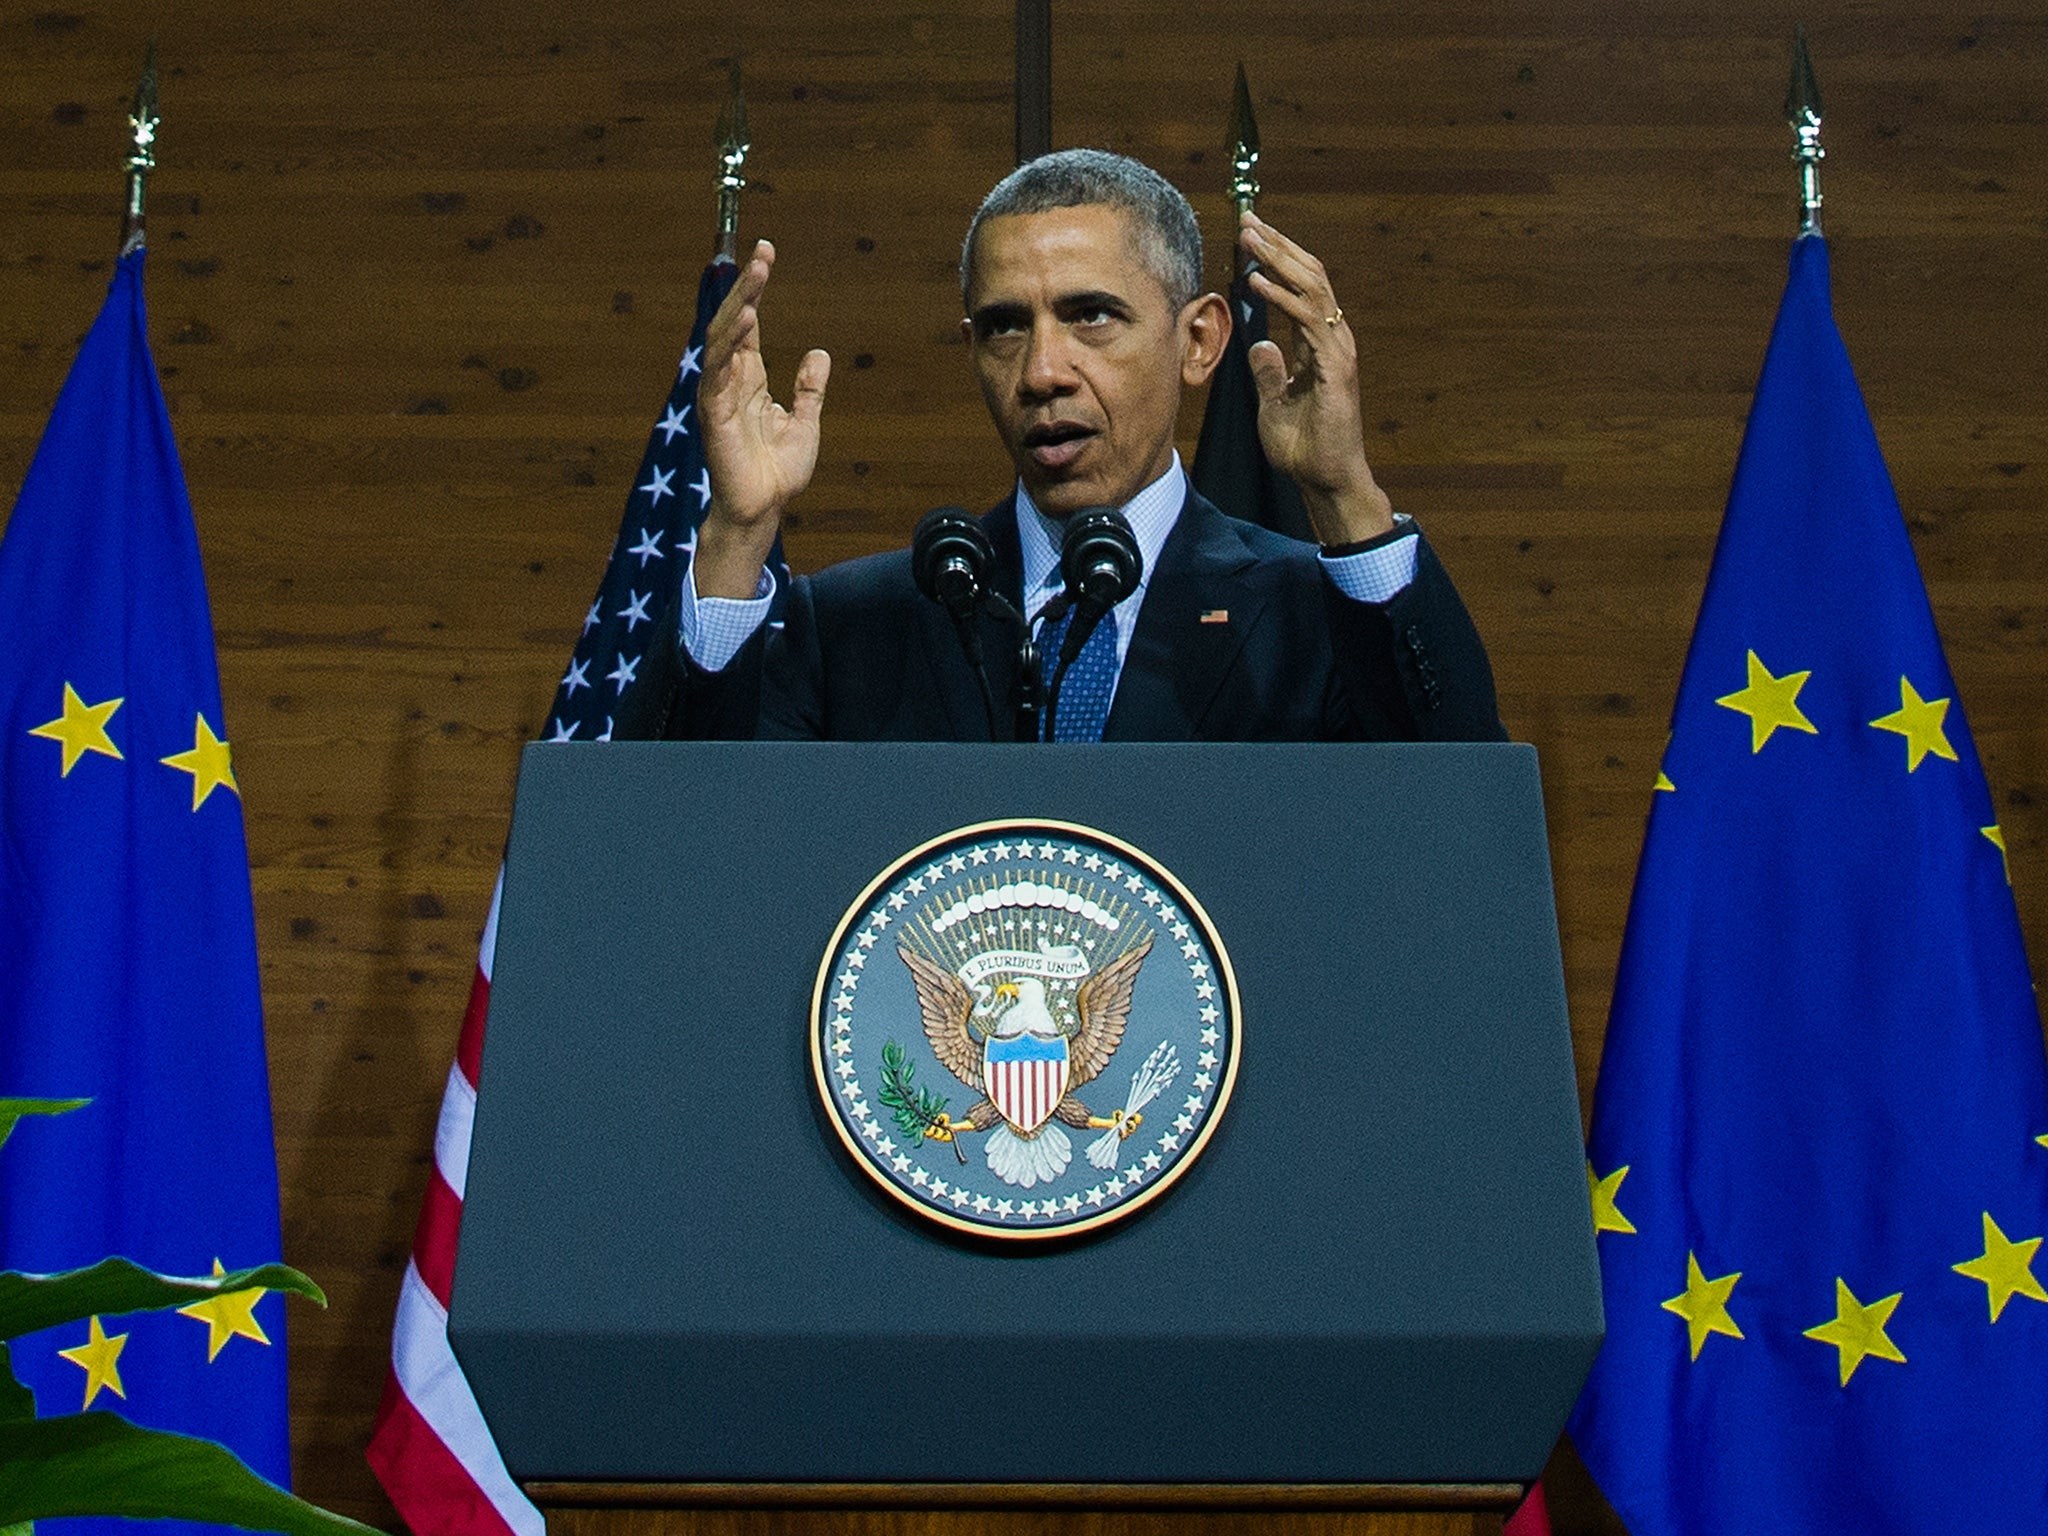 Barack Obama uses Germany visit to call for stronger Europe in face of Isis threat | The Independentindependent_brand_ident_LOGOUntitled